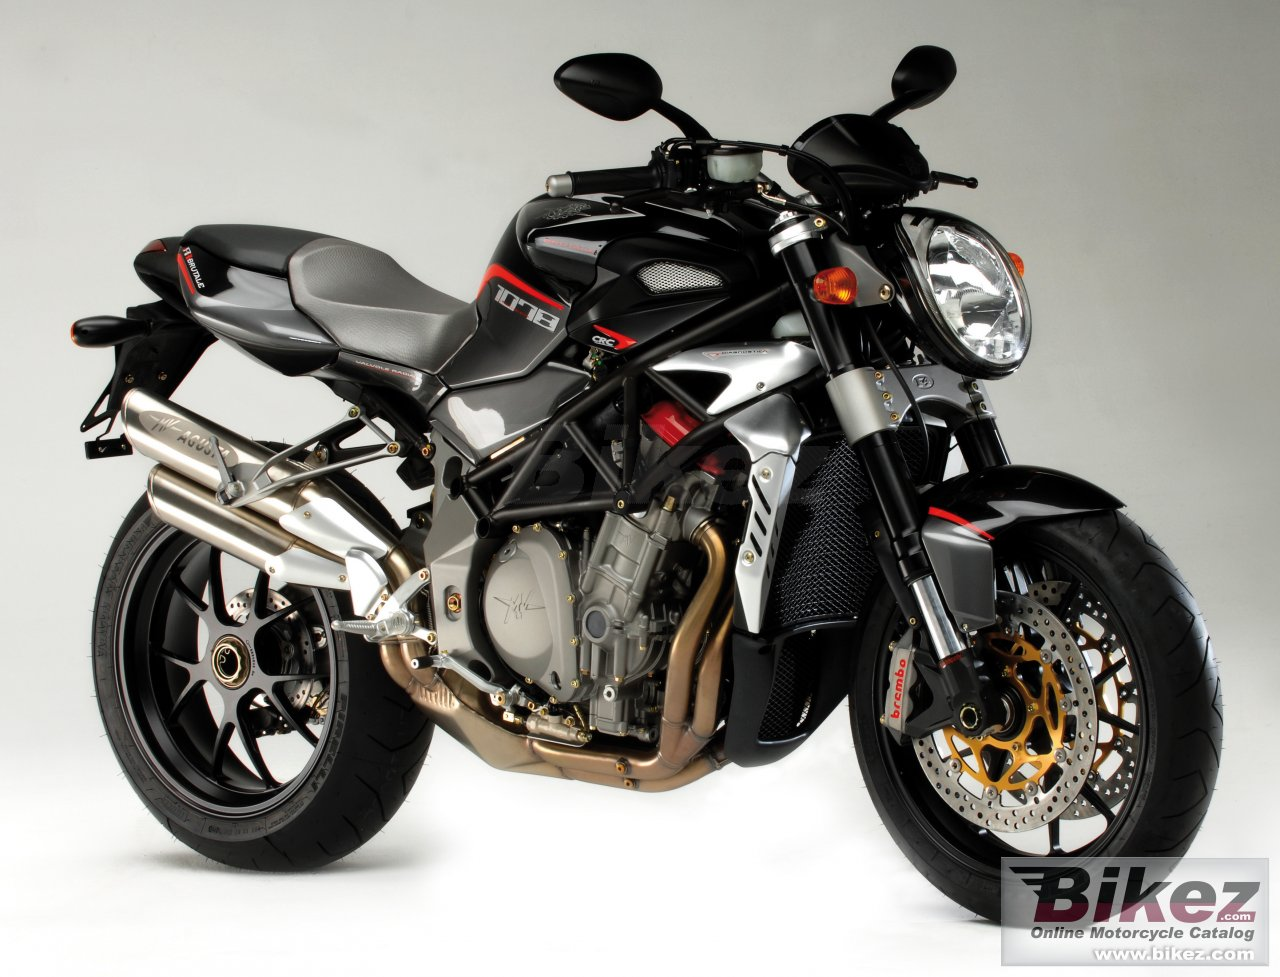 Big MV Agusta brutale 1078rr picture and wallpaper from Bikez.com